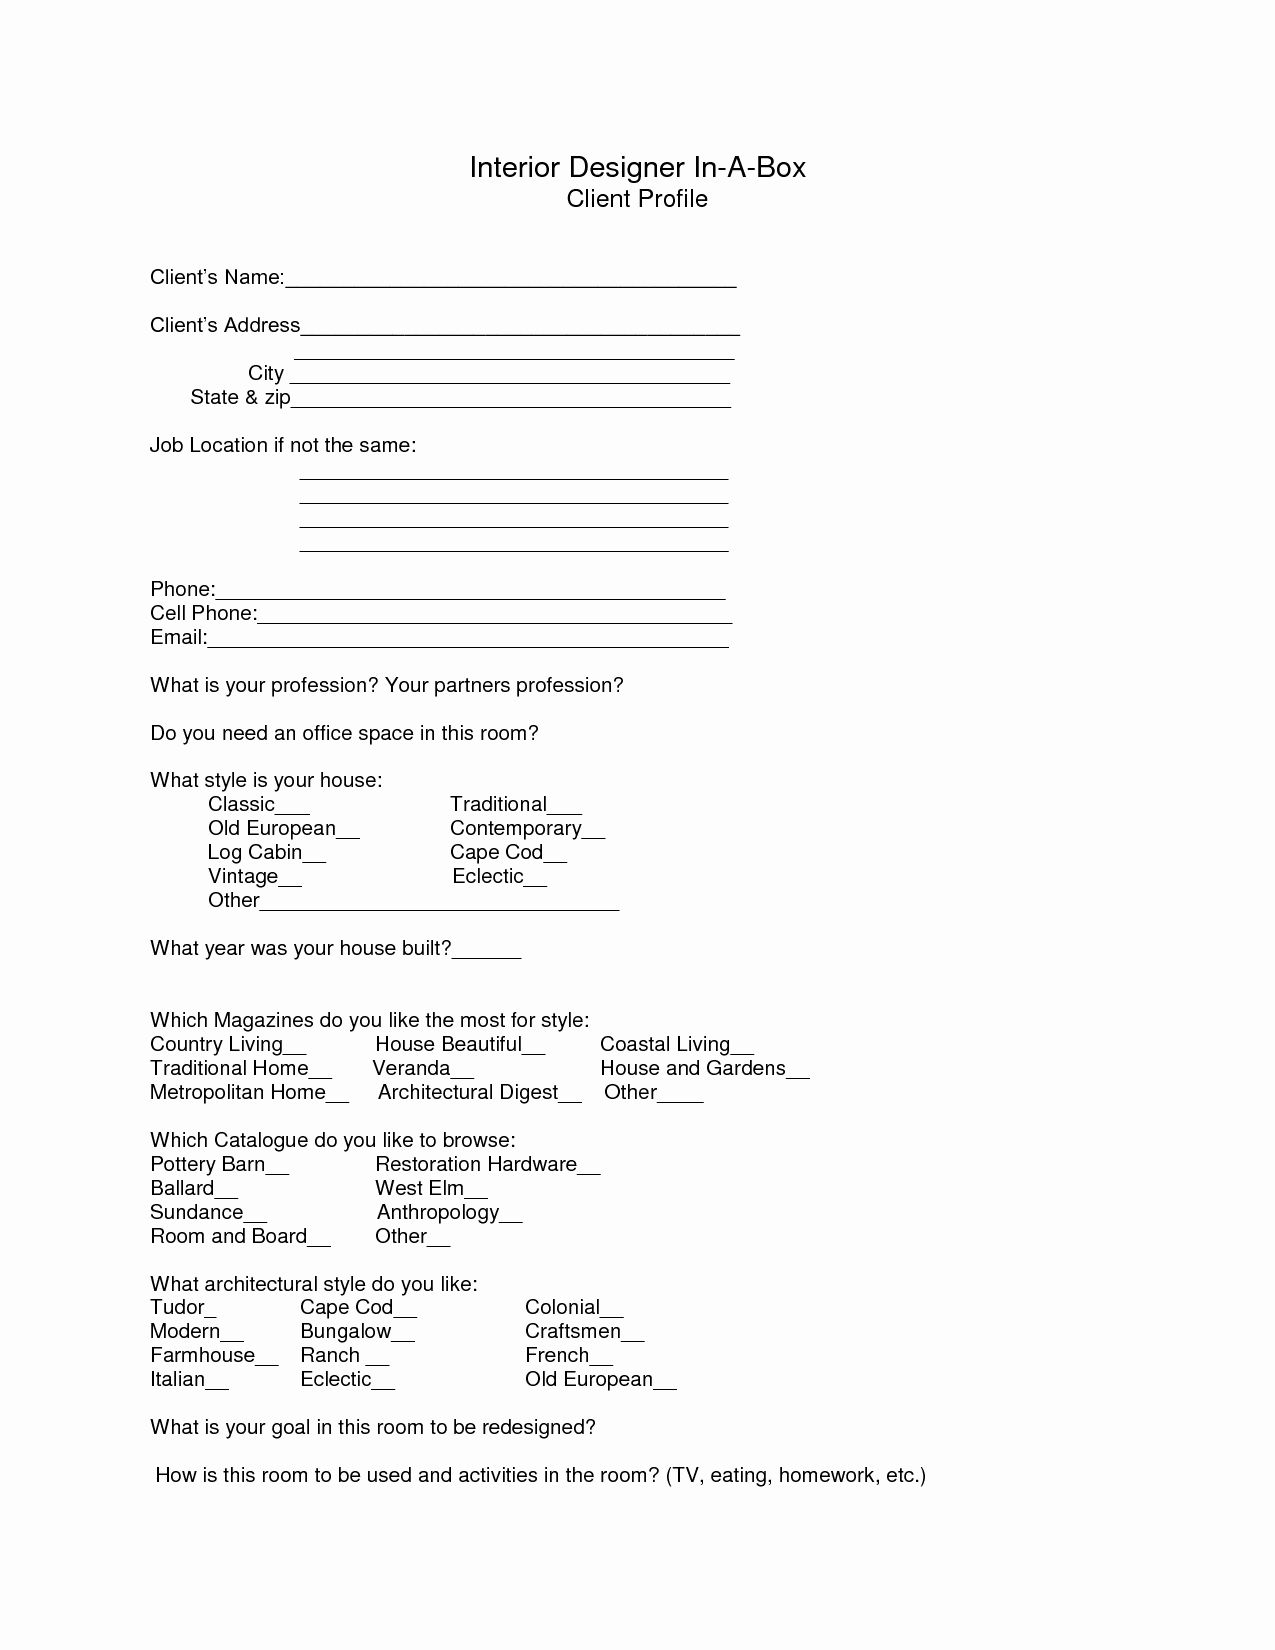 Customer Profile form Awesome Client Profile Template for Interior ...